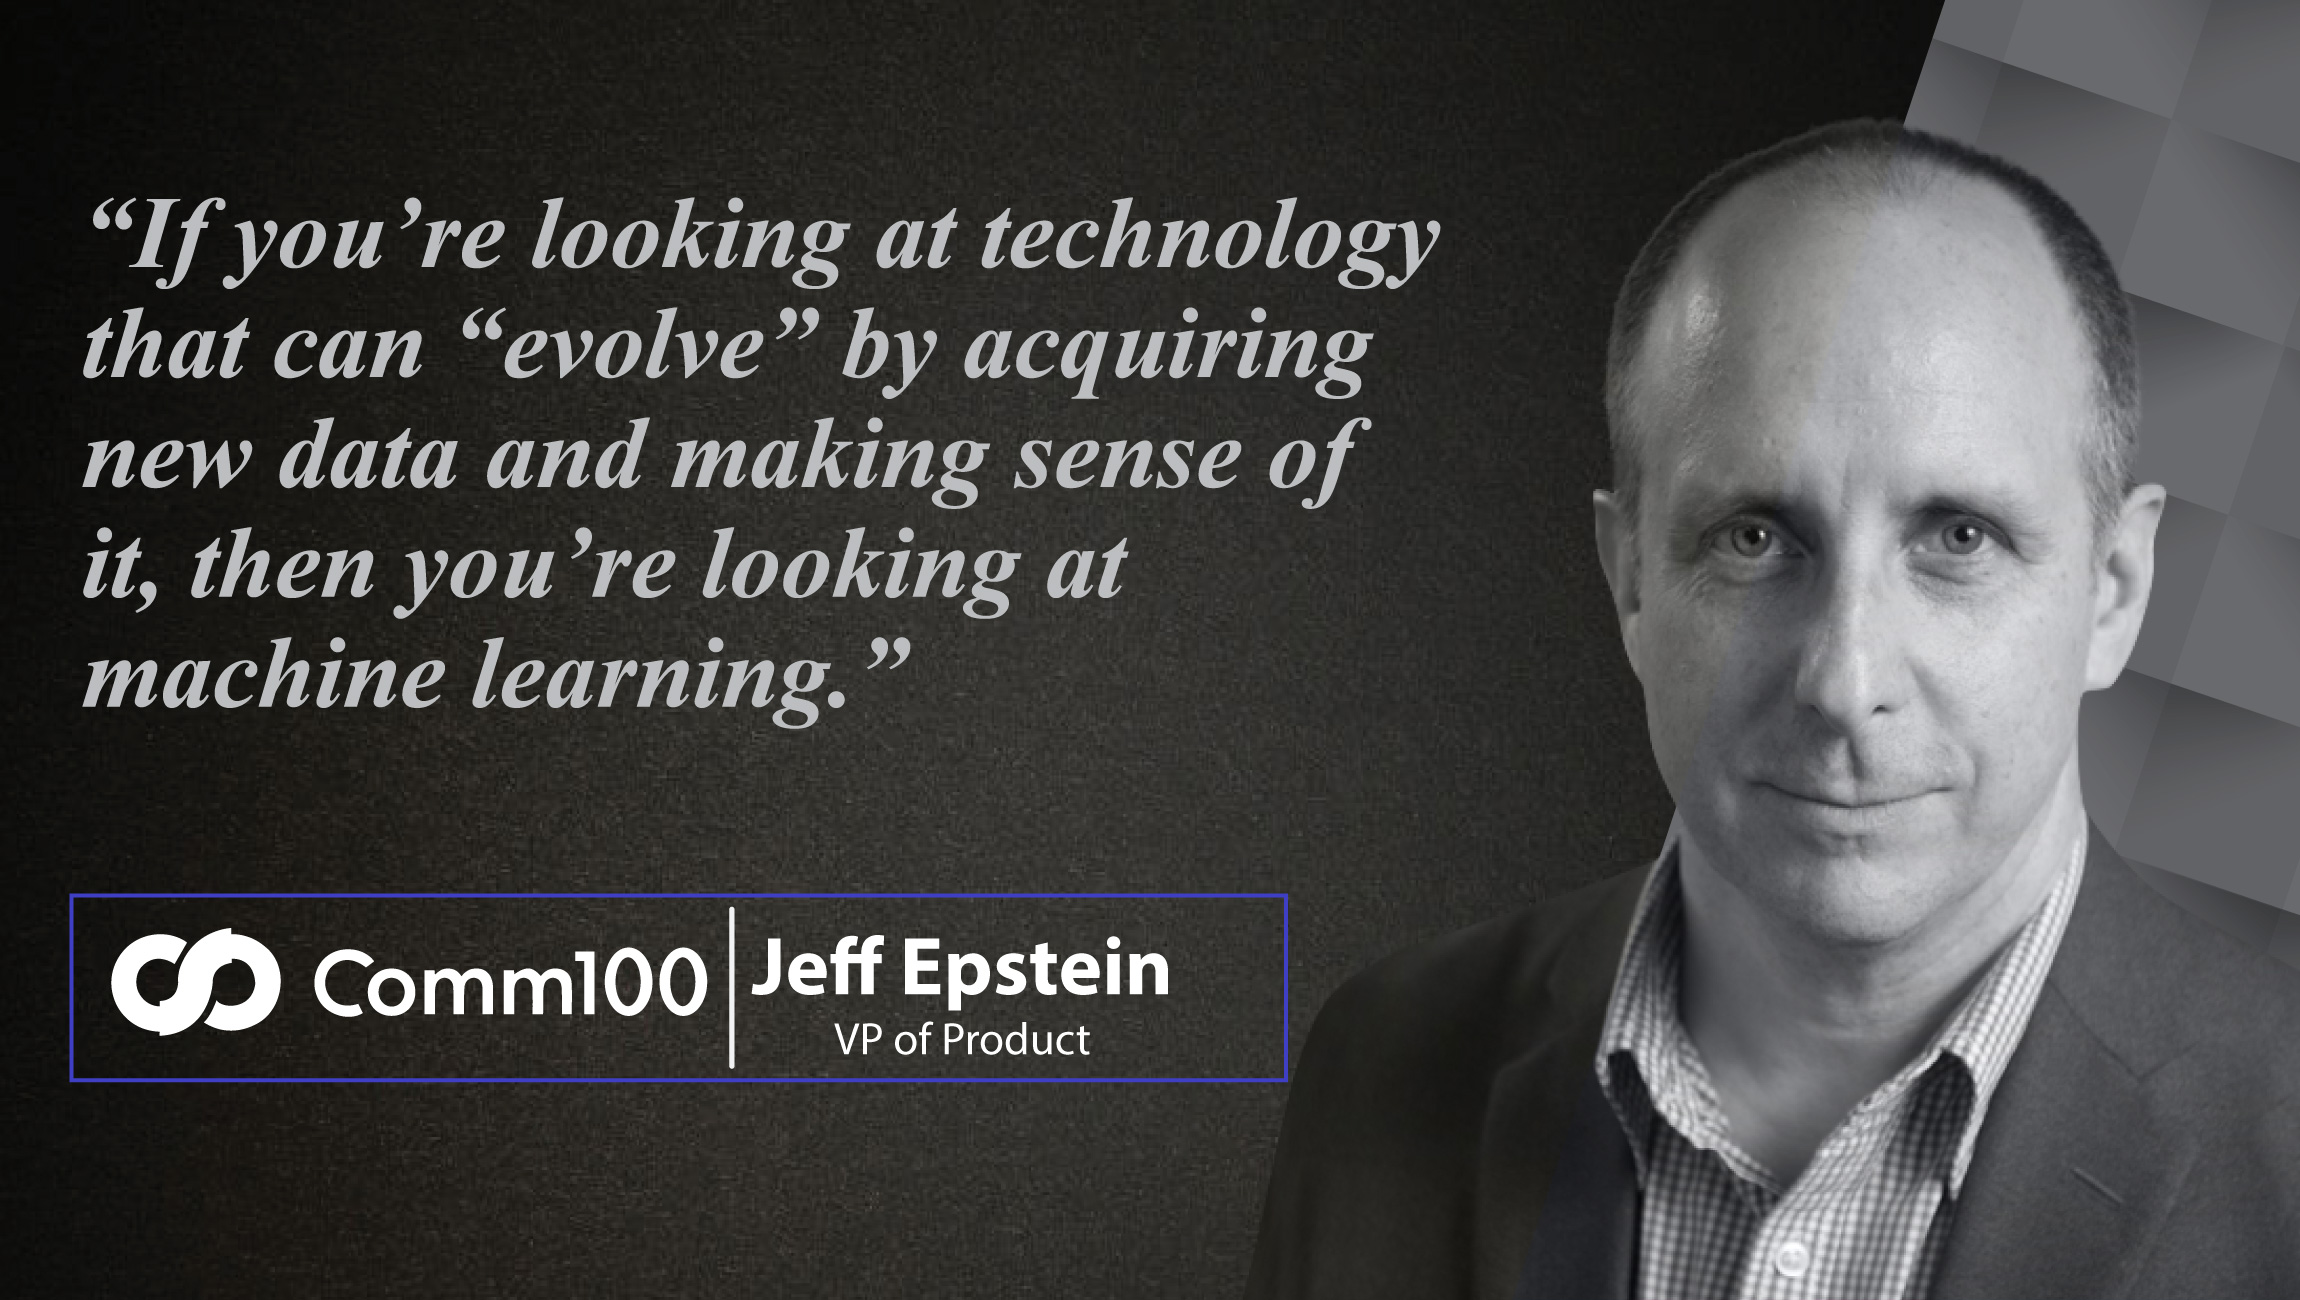 Jeff Epstein, VP of Product at Comm100